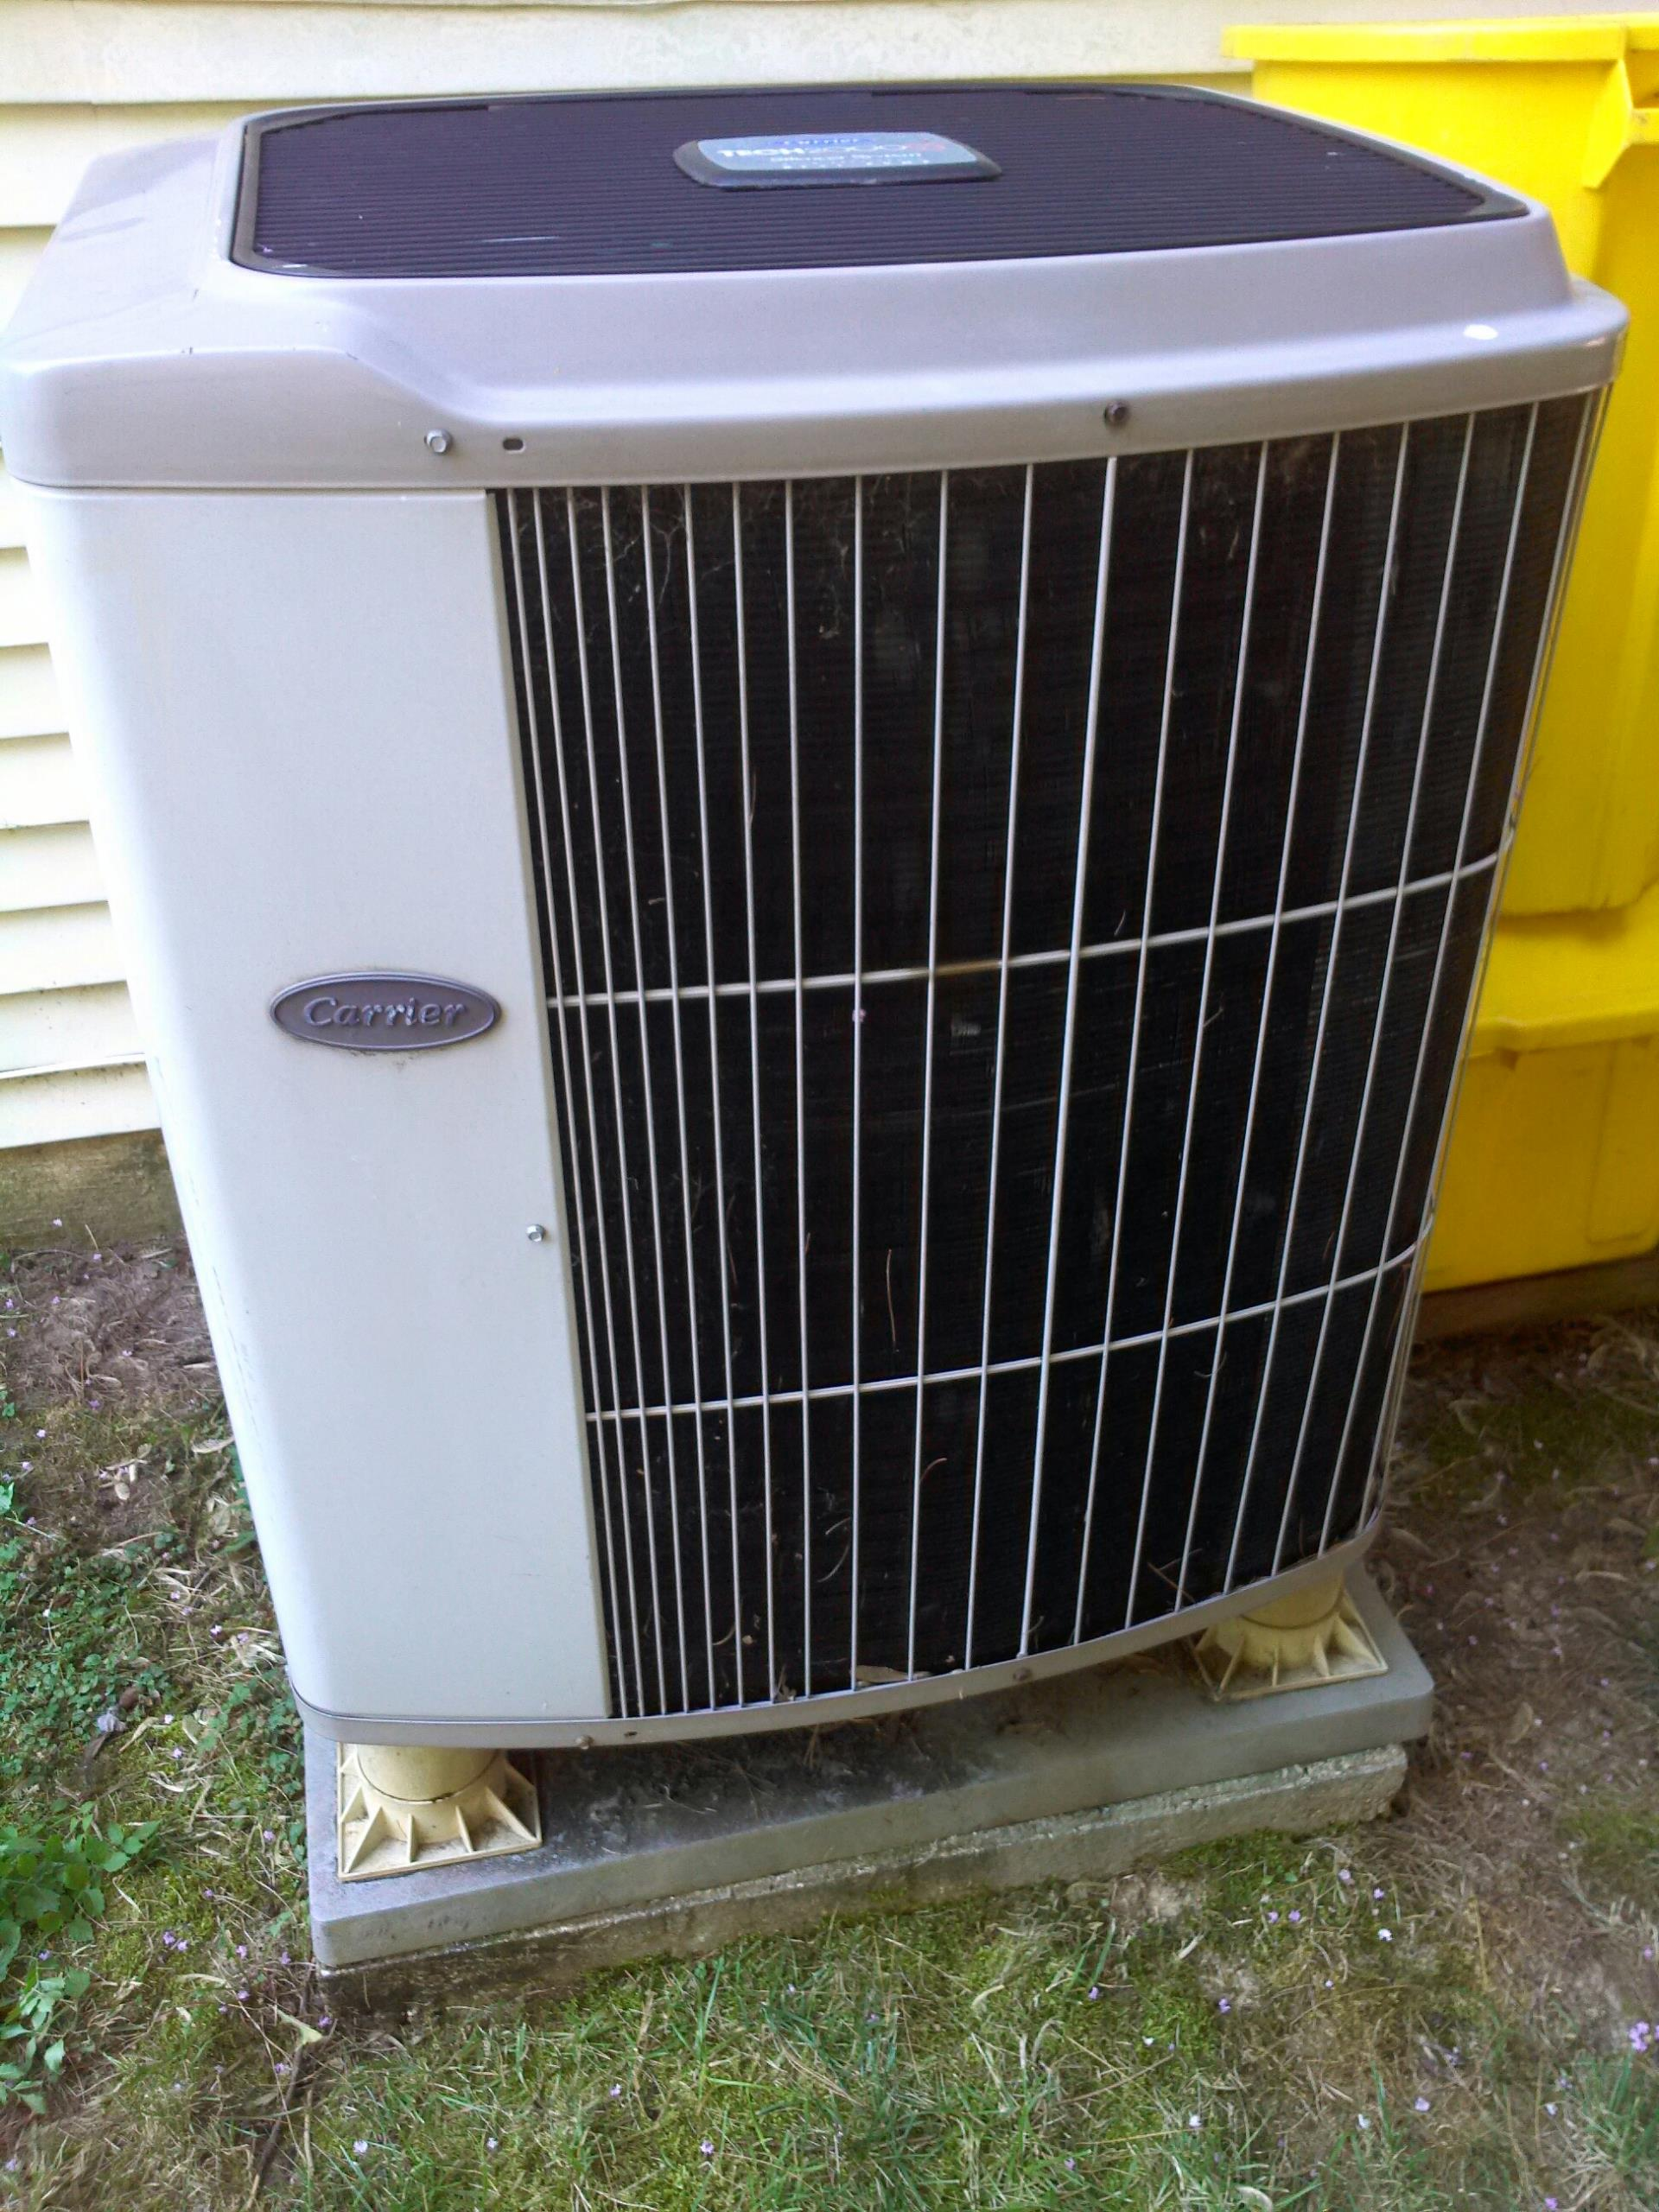 Gambrills, MD - Heat pump furnace heating & ac air conditioning system replacement installation service call Gambrills Maryland 21054